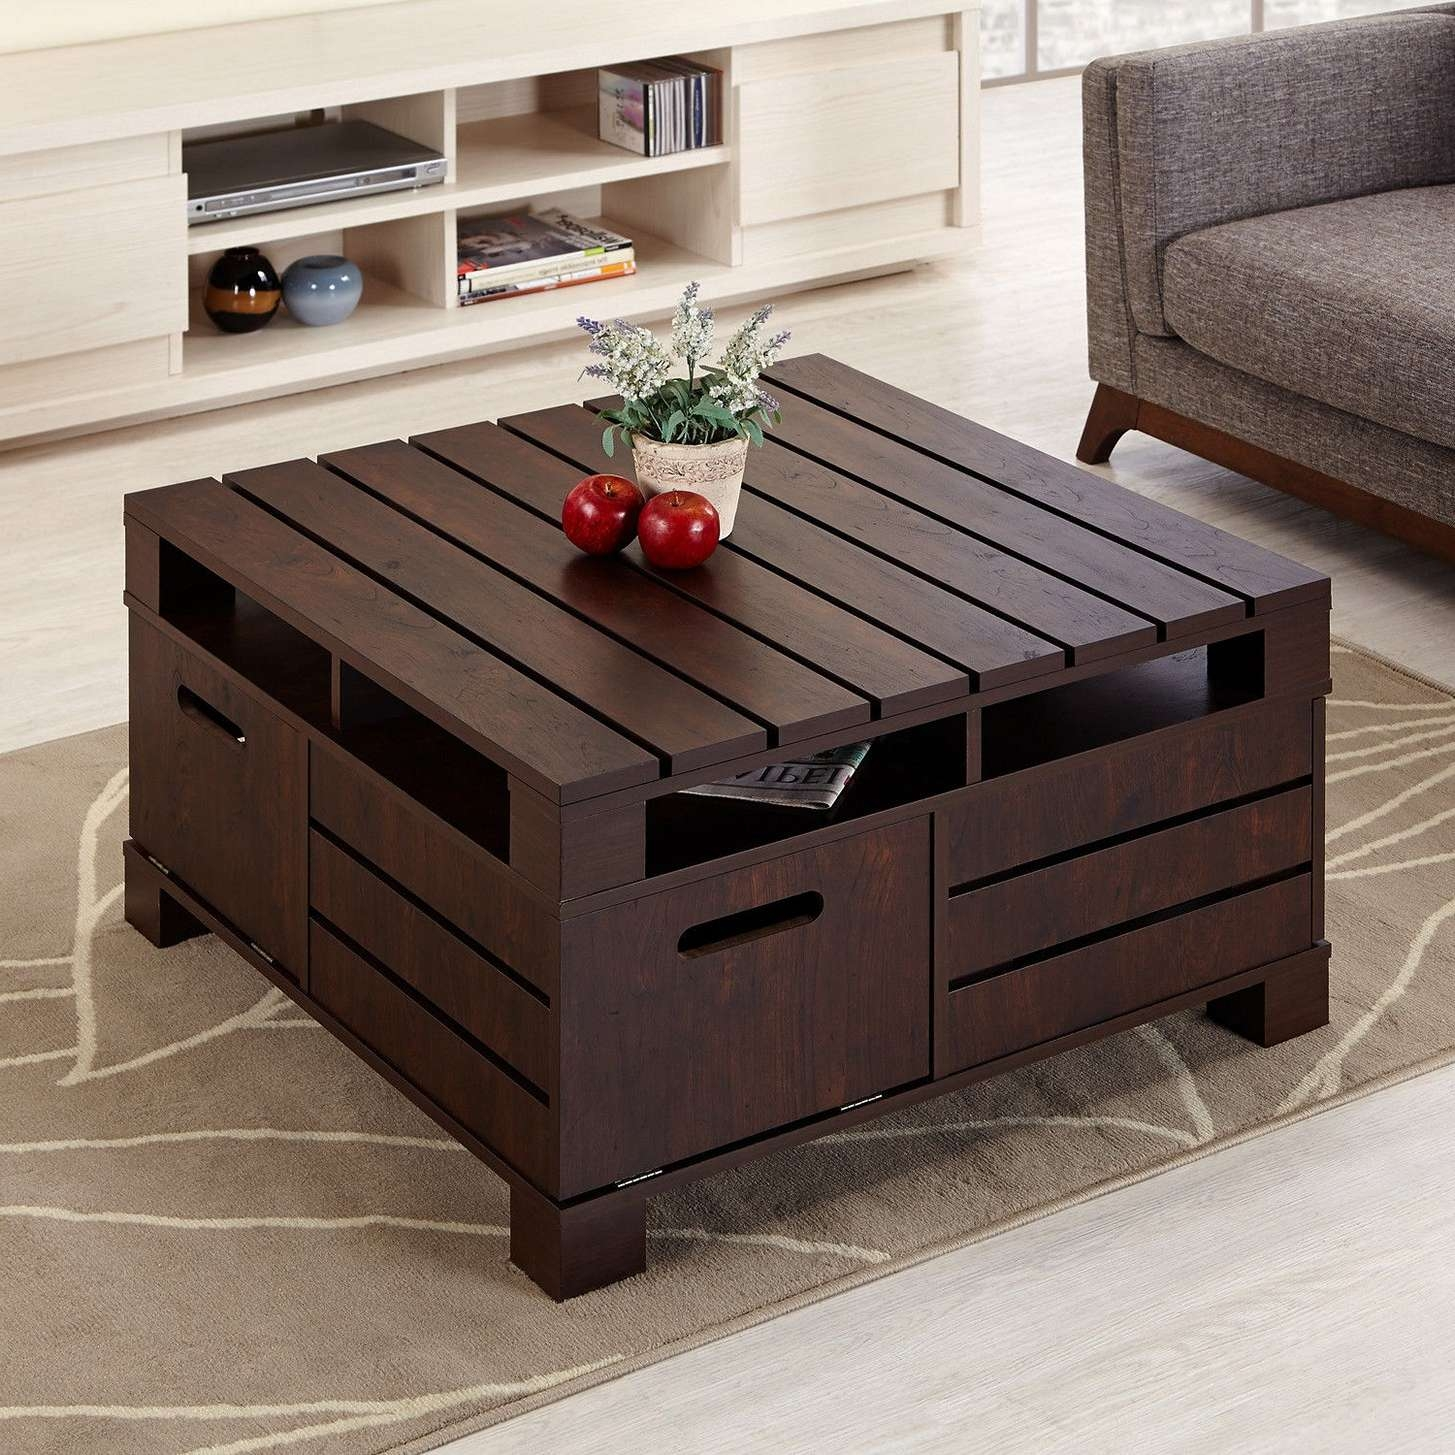 Coffee Tables : Diy Wood Pallet Coffee Table Design Plans Making Intended For Recent Rustic Storage Diy Coffee Tables (View 13 of 20)